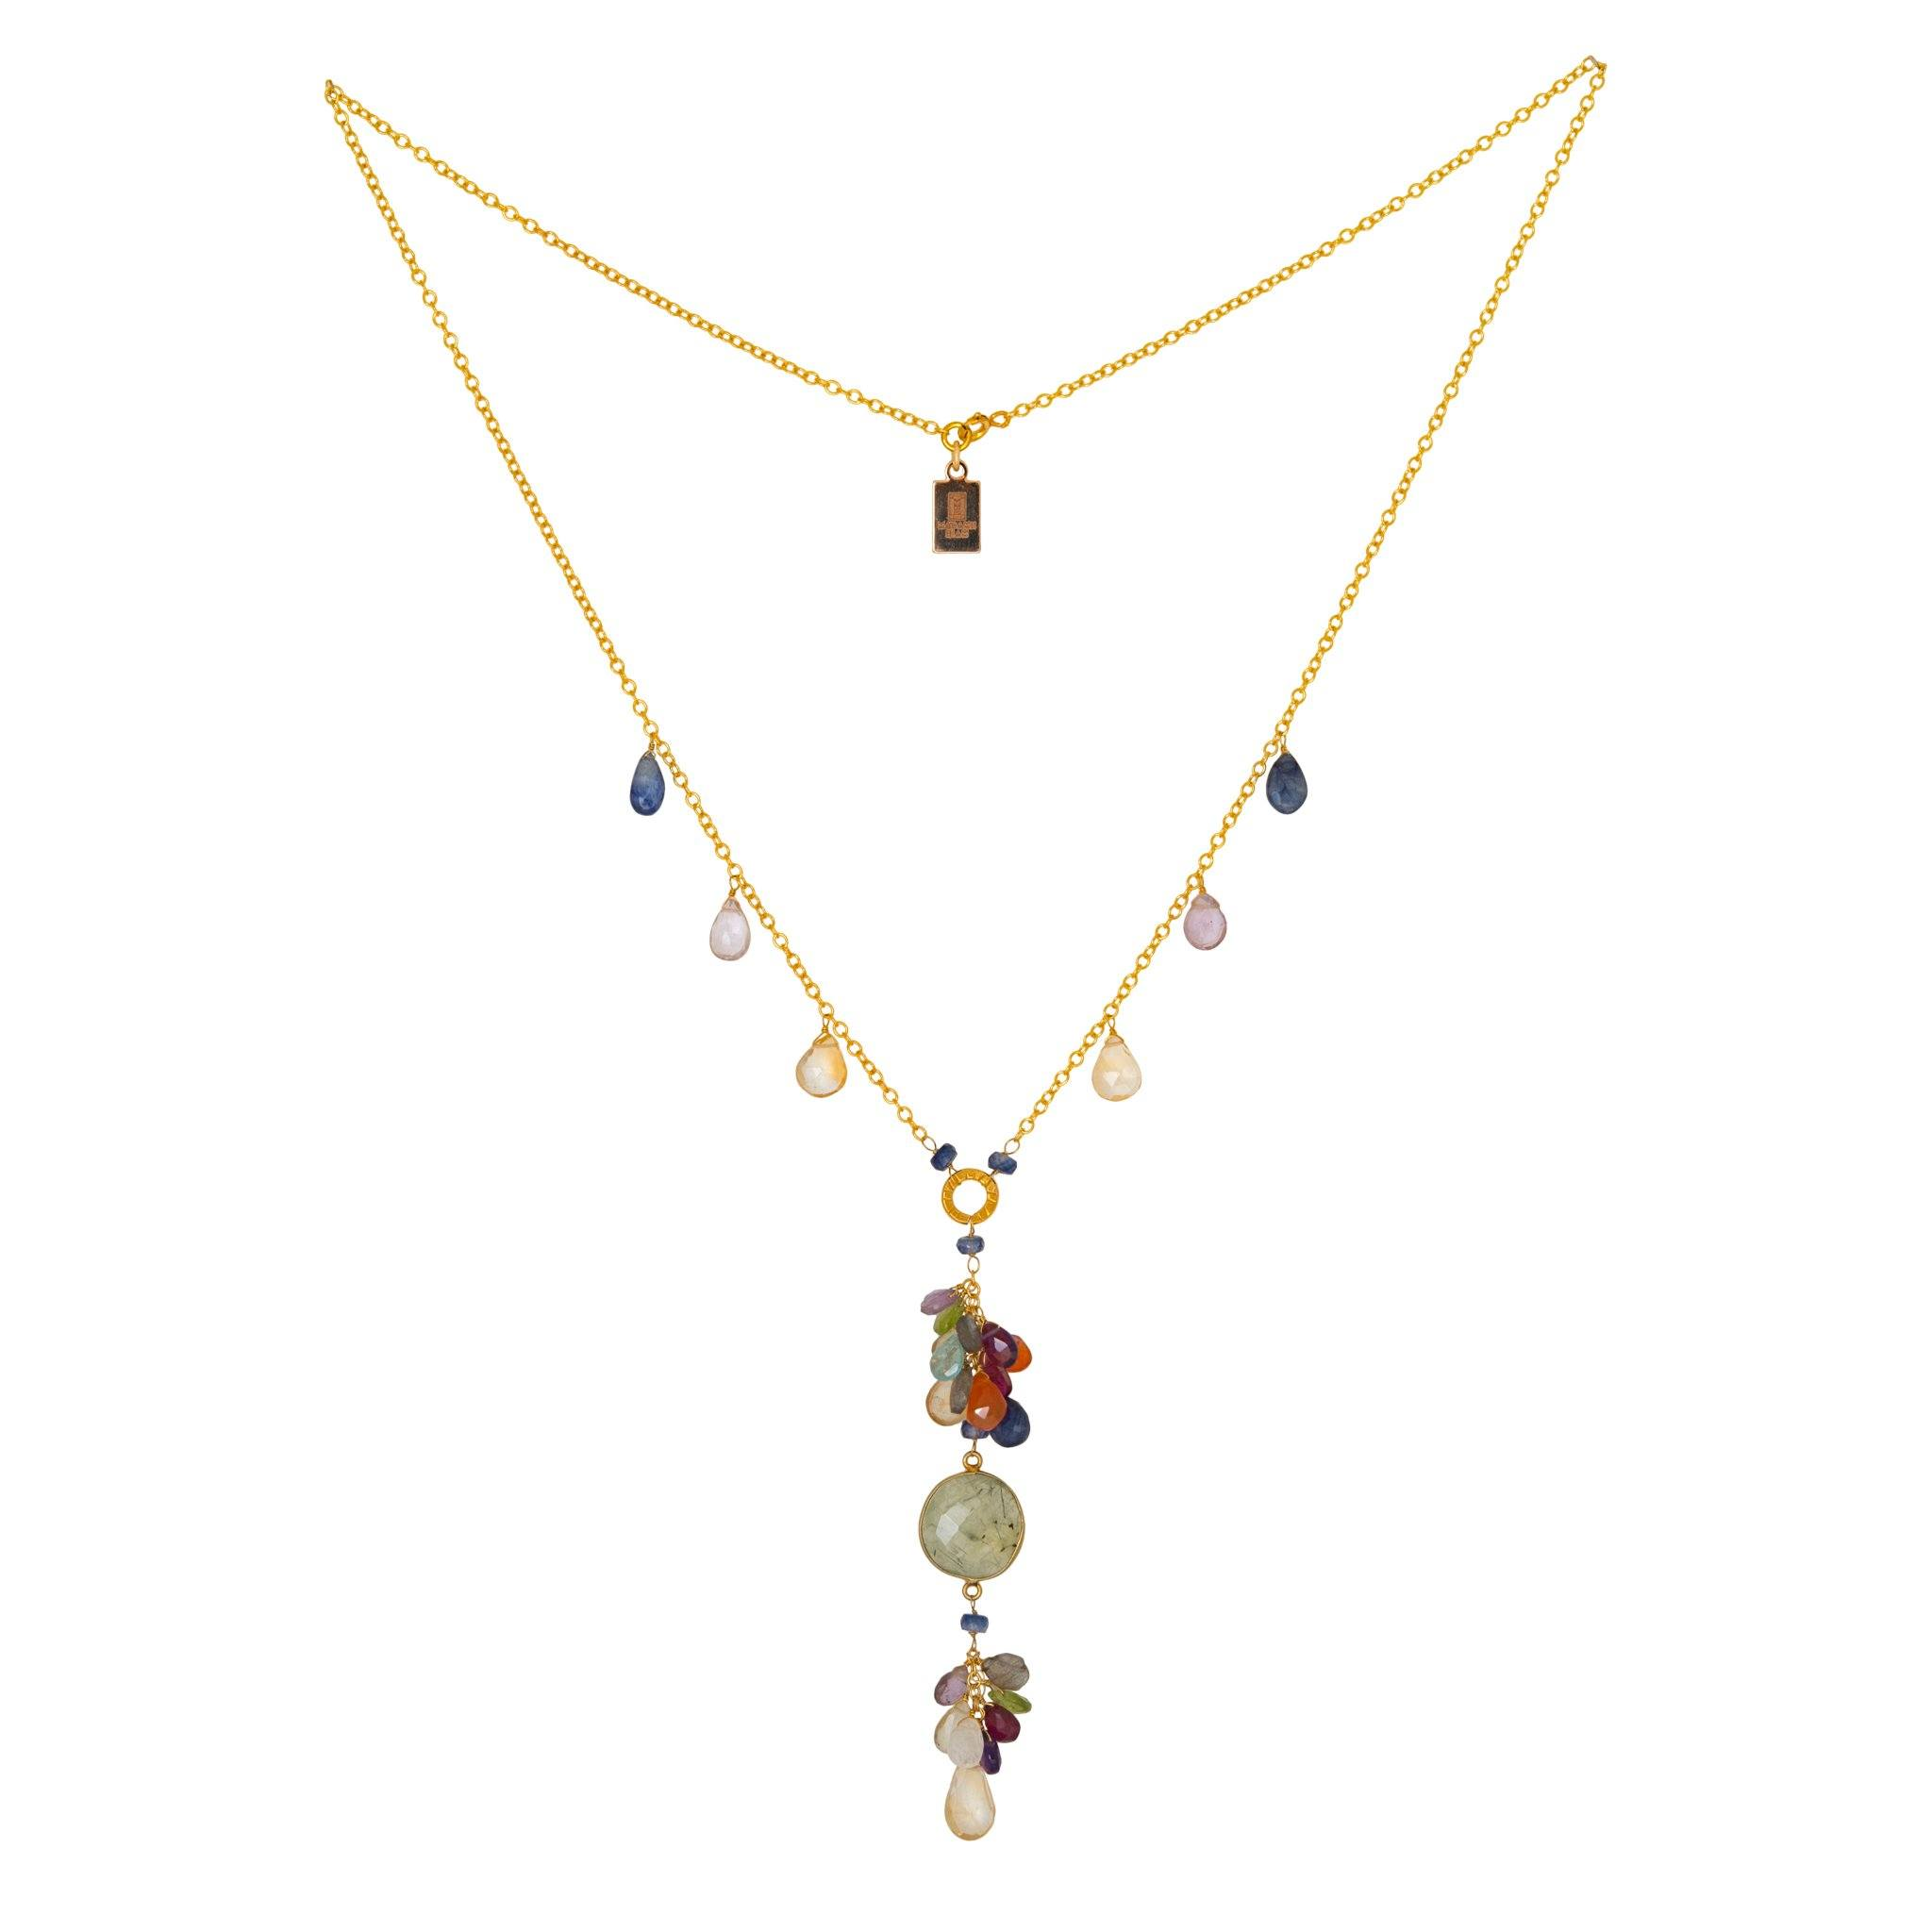 ROSA prehnite necklace with drops - MadamSiam